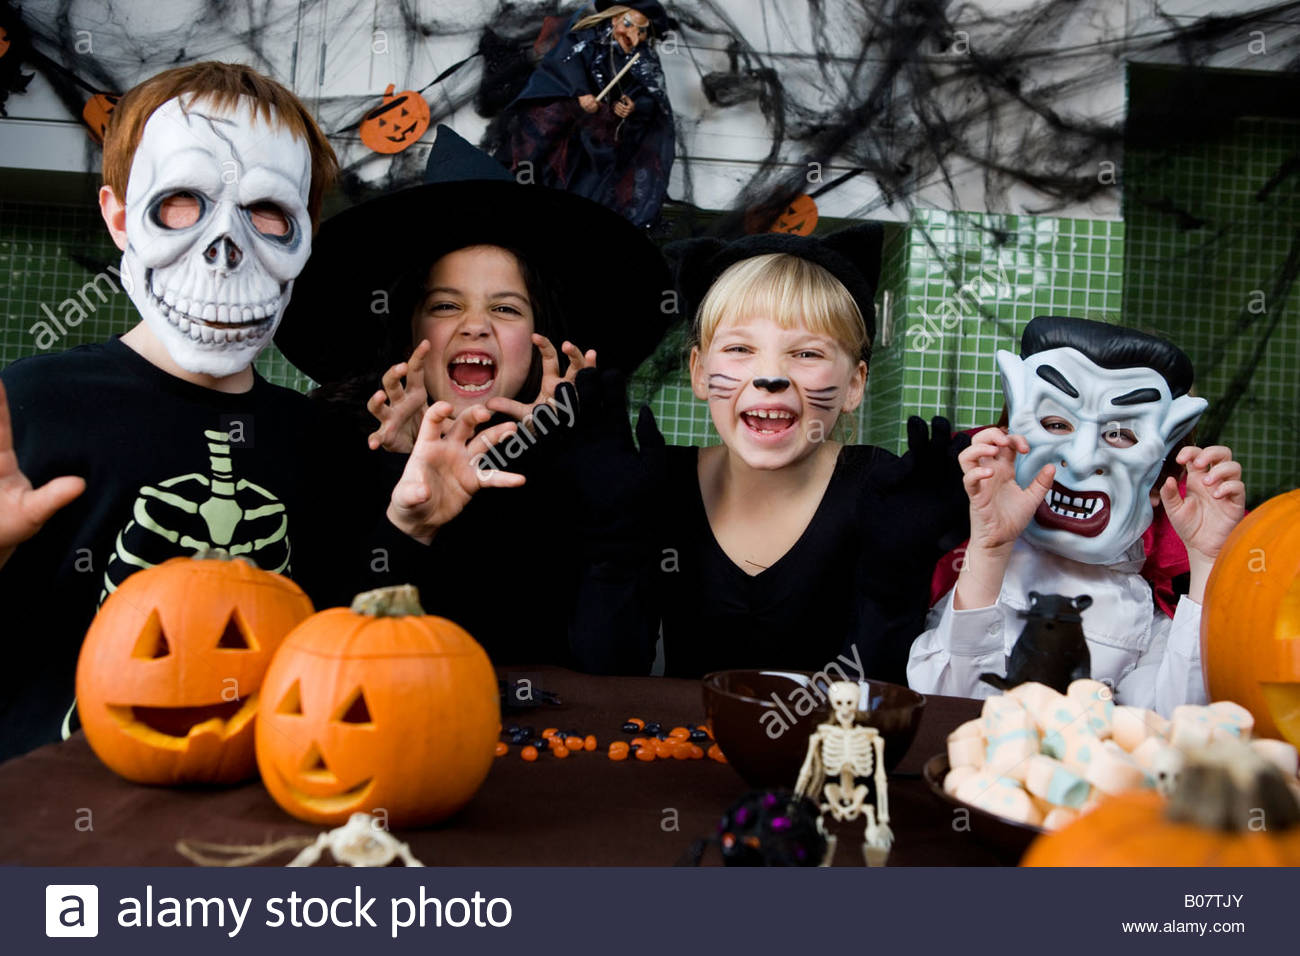 Four friends at a Halloween party - Stock Image